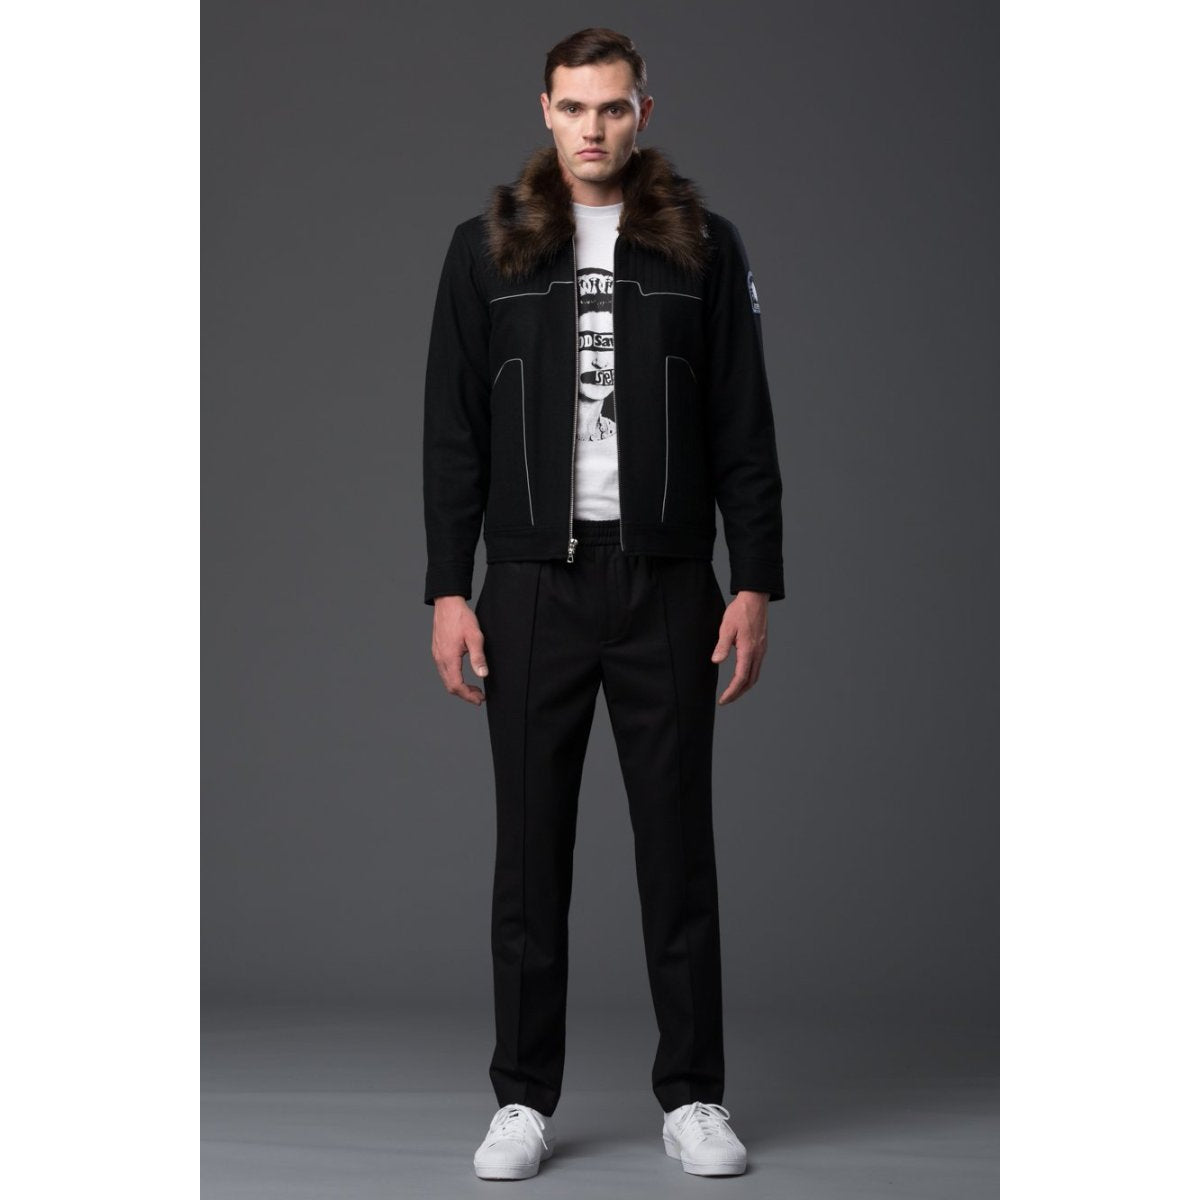 NP Elliott Black Air Force Jacket